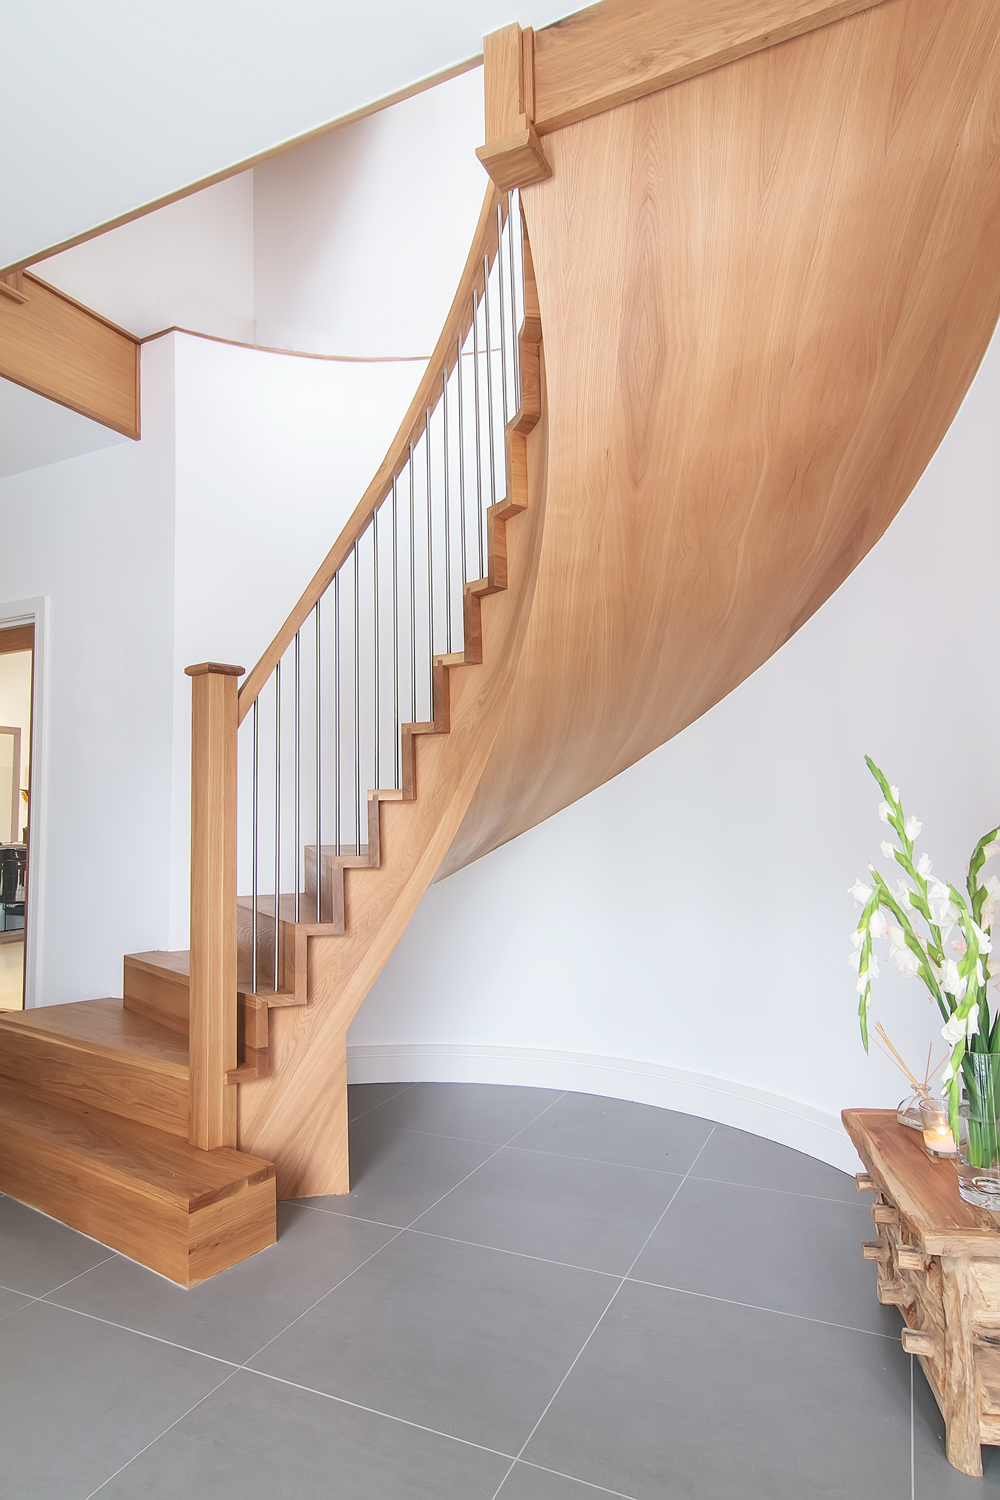 Bespoke staircase design stair manufacture and professional stairs installation based glasgow - Stairlift for curved staircase ...